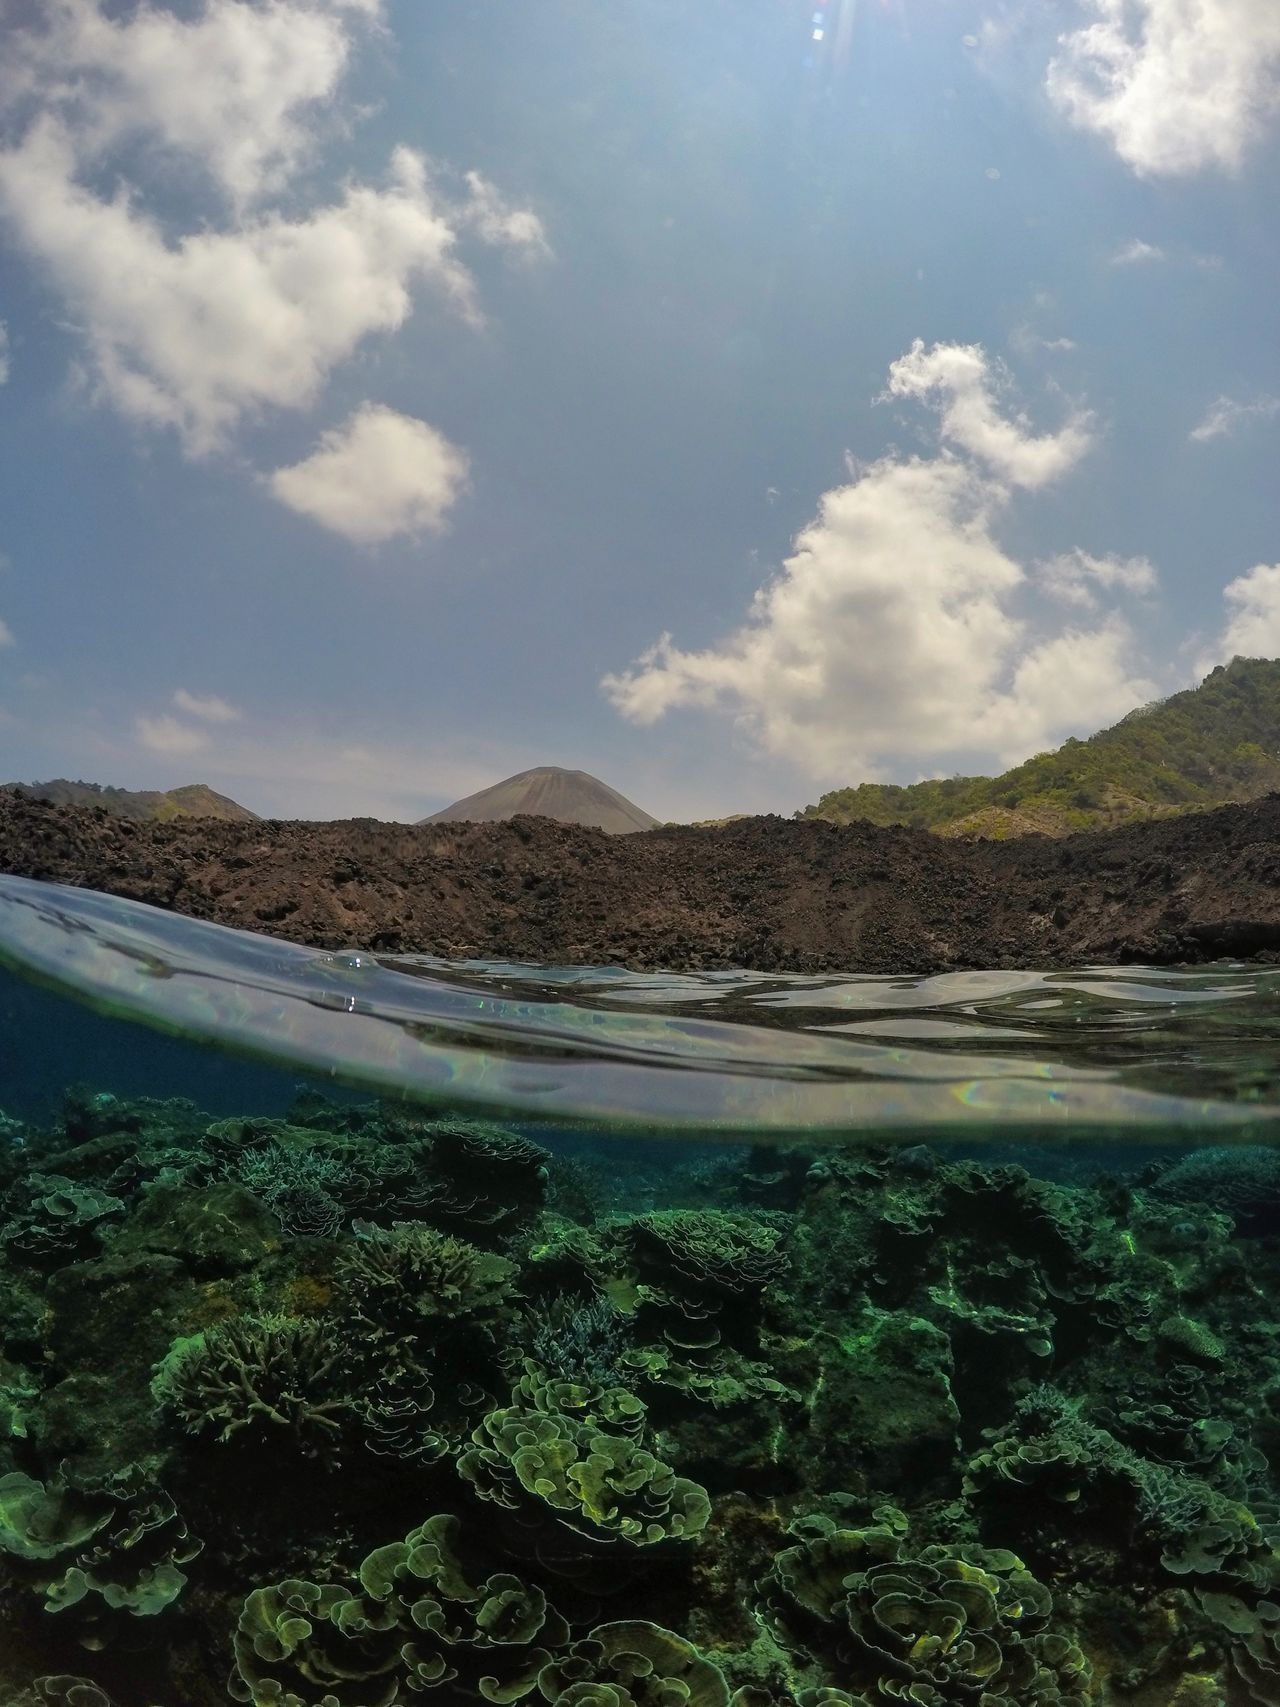 Water Nature Landscape No People Outdoors Beauty In Nature Freshness Oceanlifestyle Oceaninspiration Goprooftheday The Great Outdoors - 2016 EyeEm Awards Coral Reef Scuba Diving Volcano India The Essence Of Summer Check This Out UnderSea Protecting Where We Play Splitshot